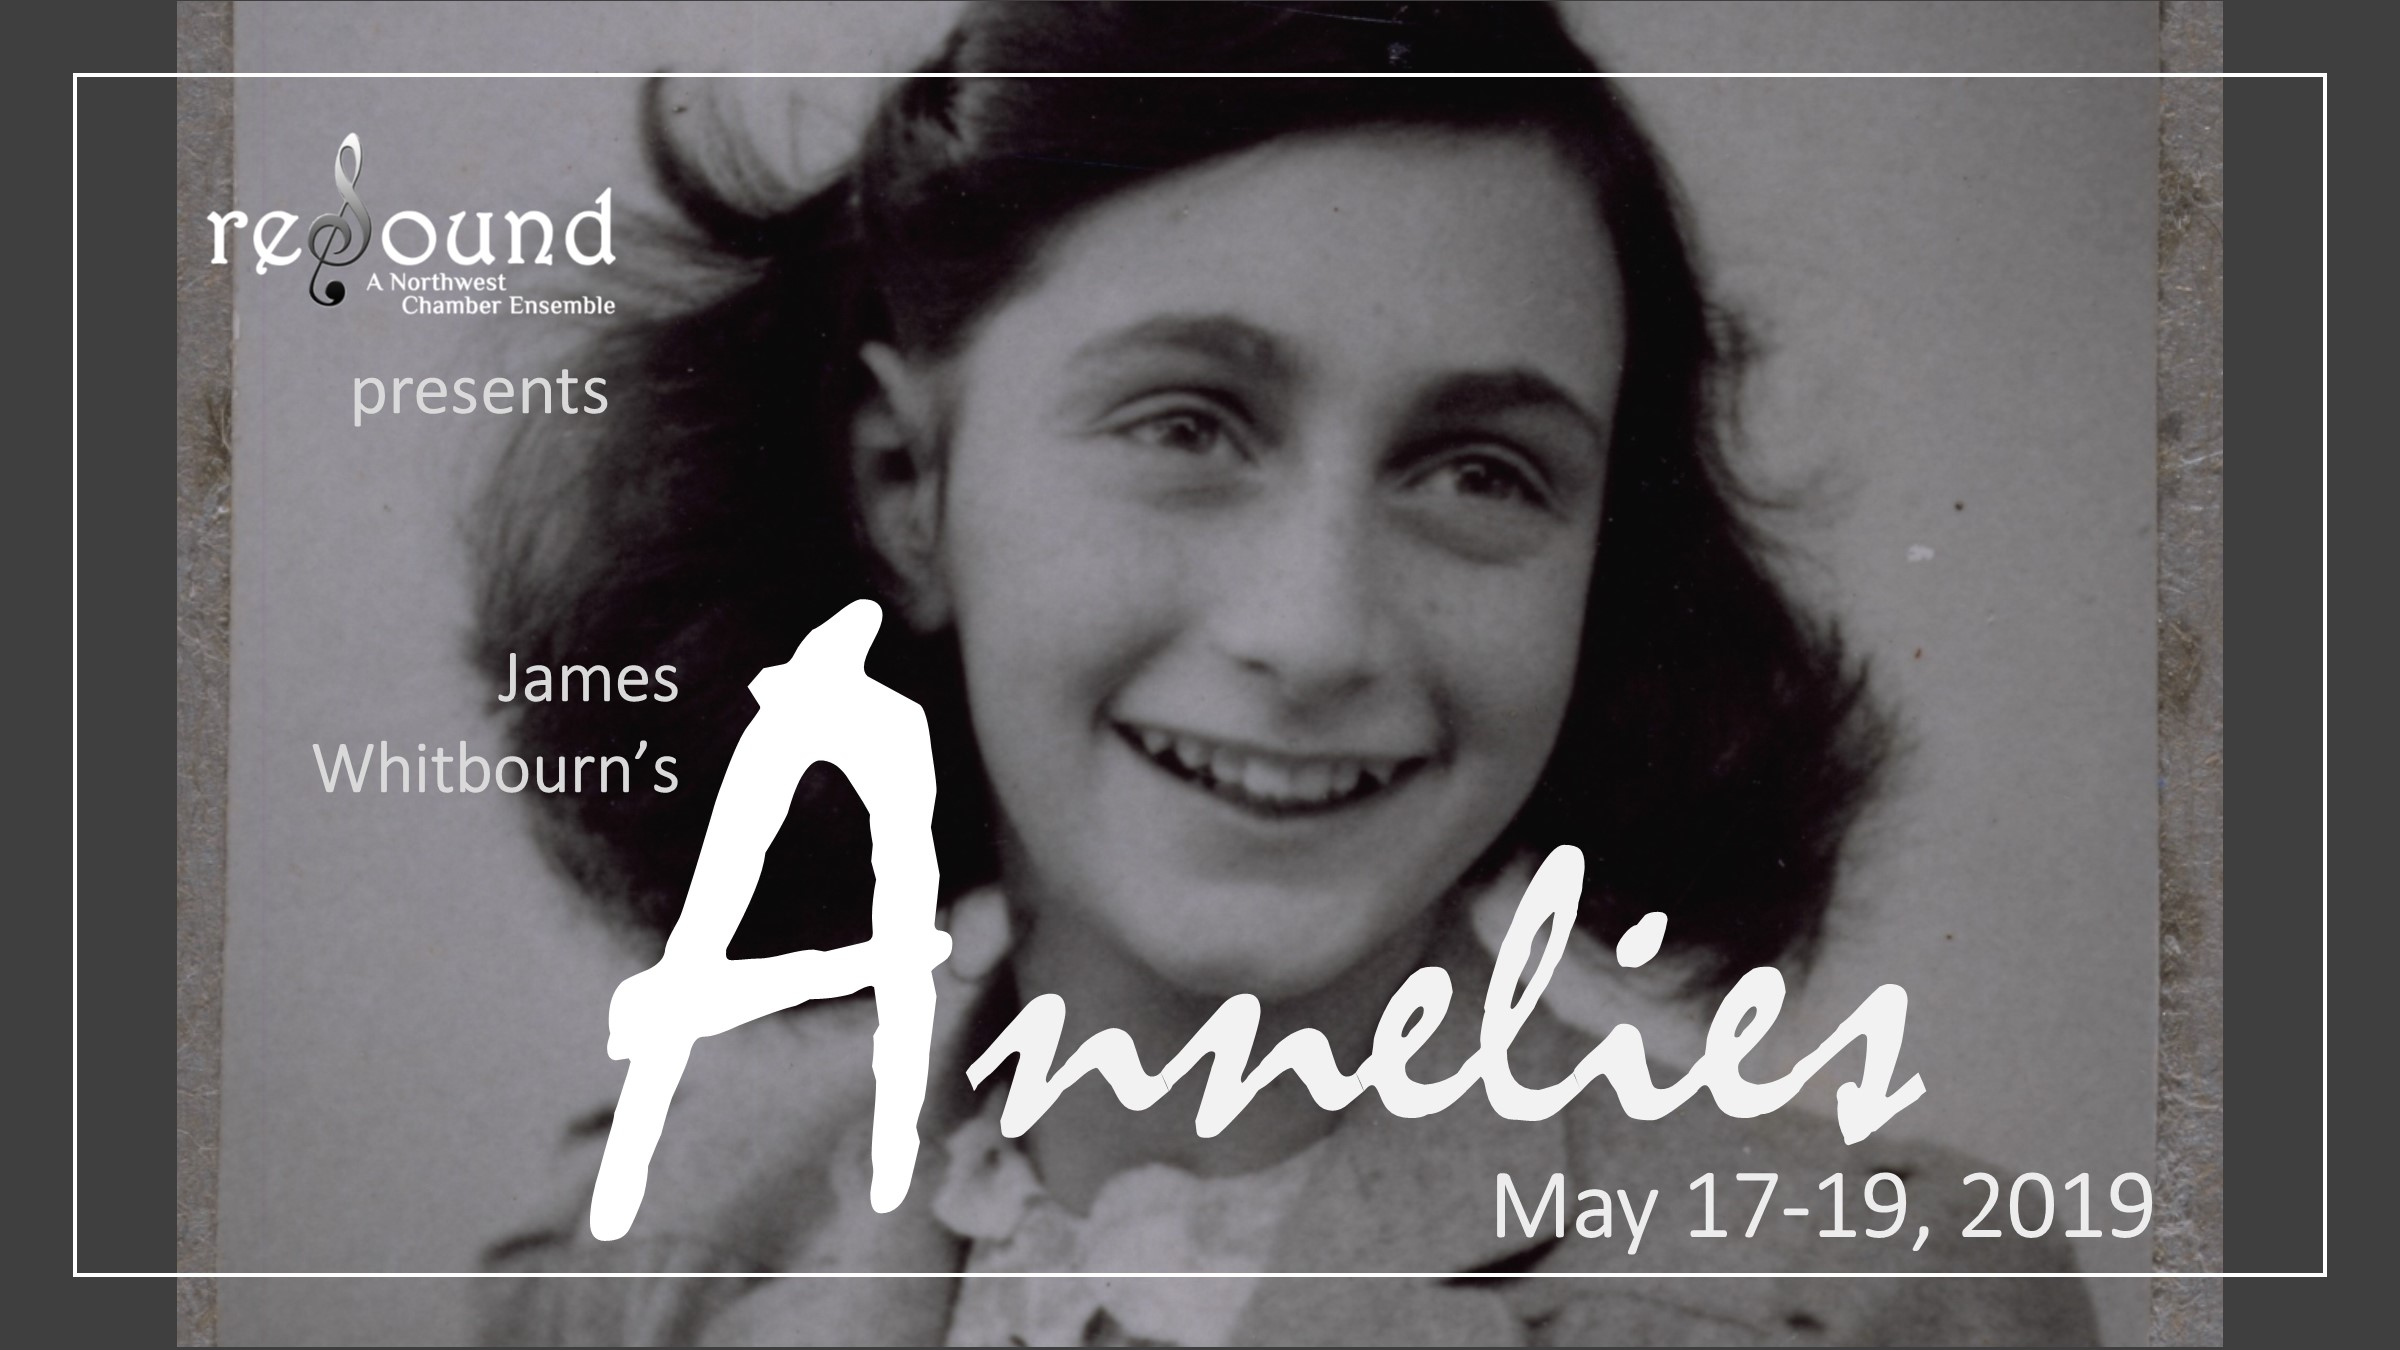 Photograph (c) ANNE FRANK FONDS, Basel, Anne Frank Stichting, Amsterdam